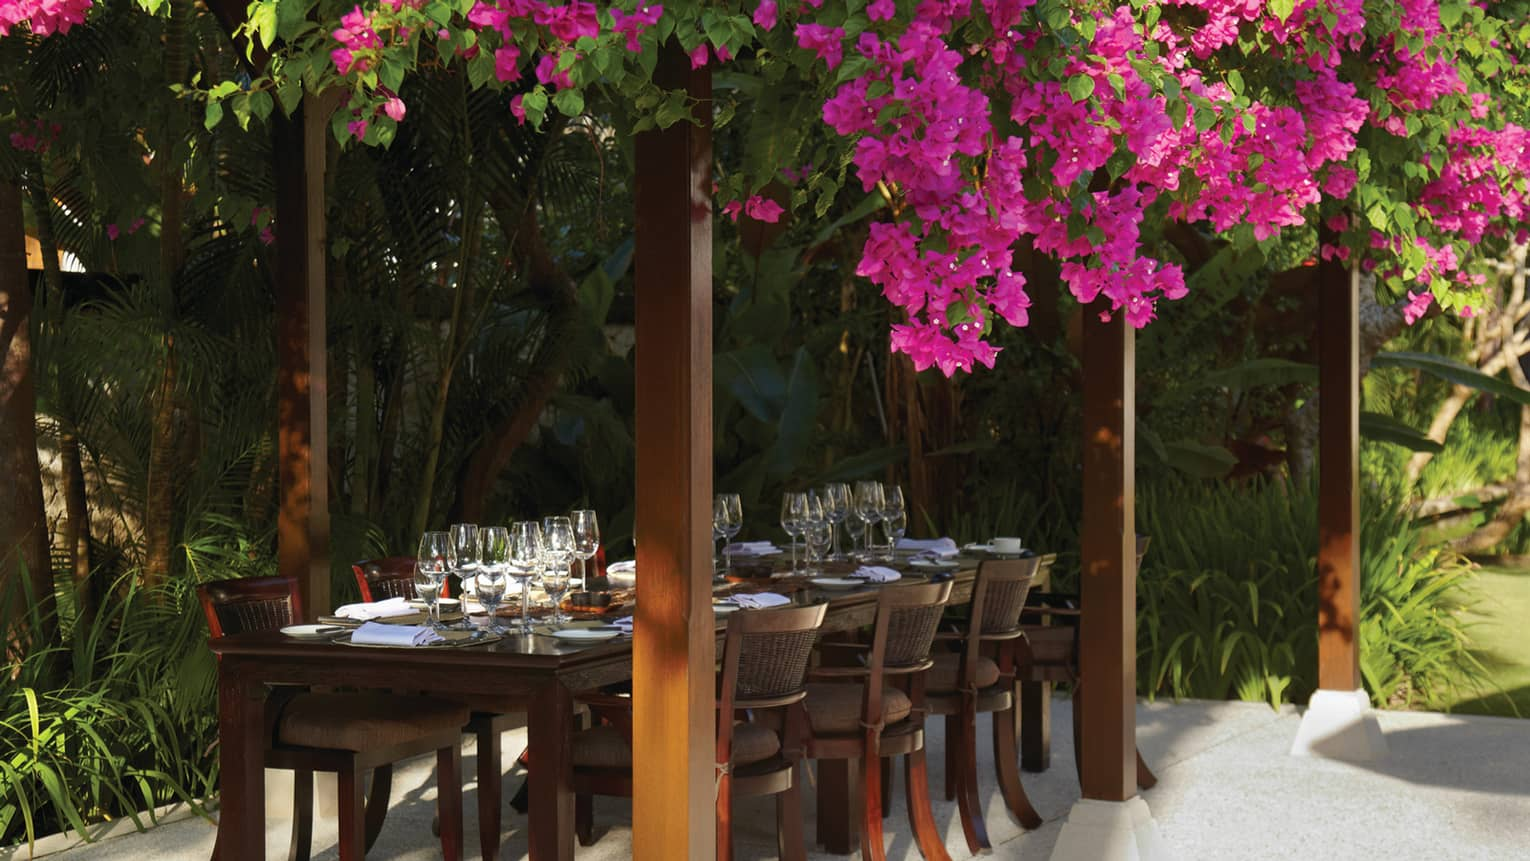 Purple flowers draped over pergola and large outdoor dining table